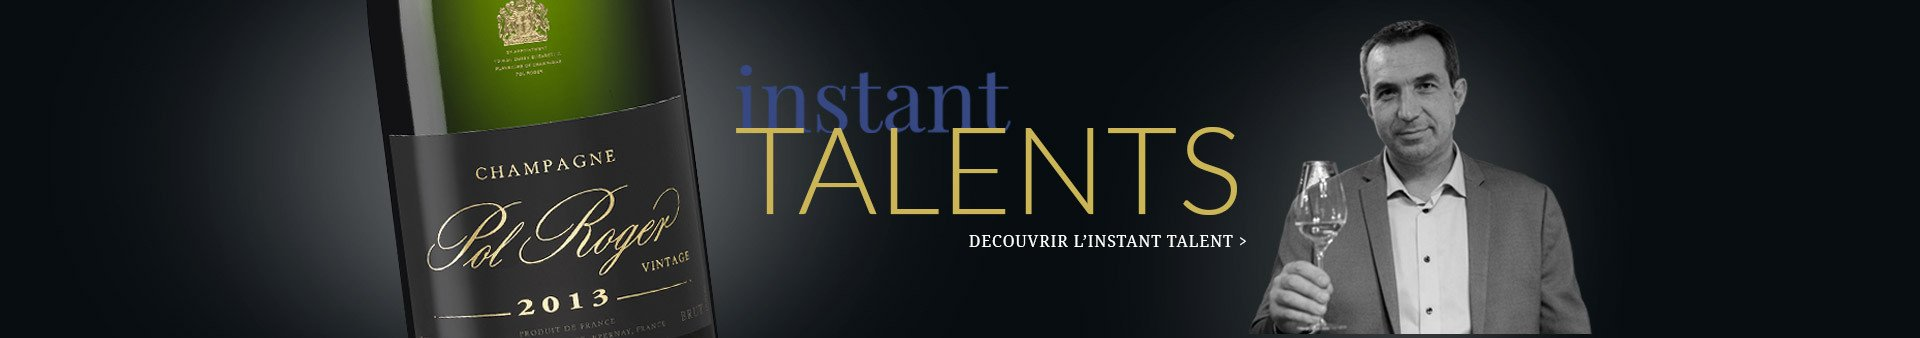 Instant Talents